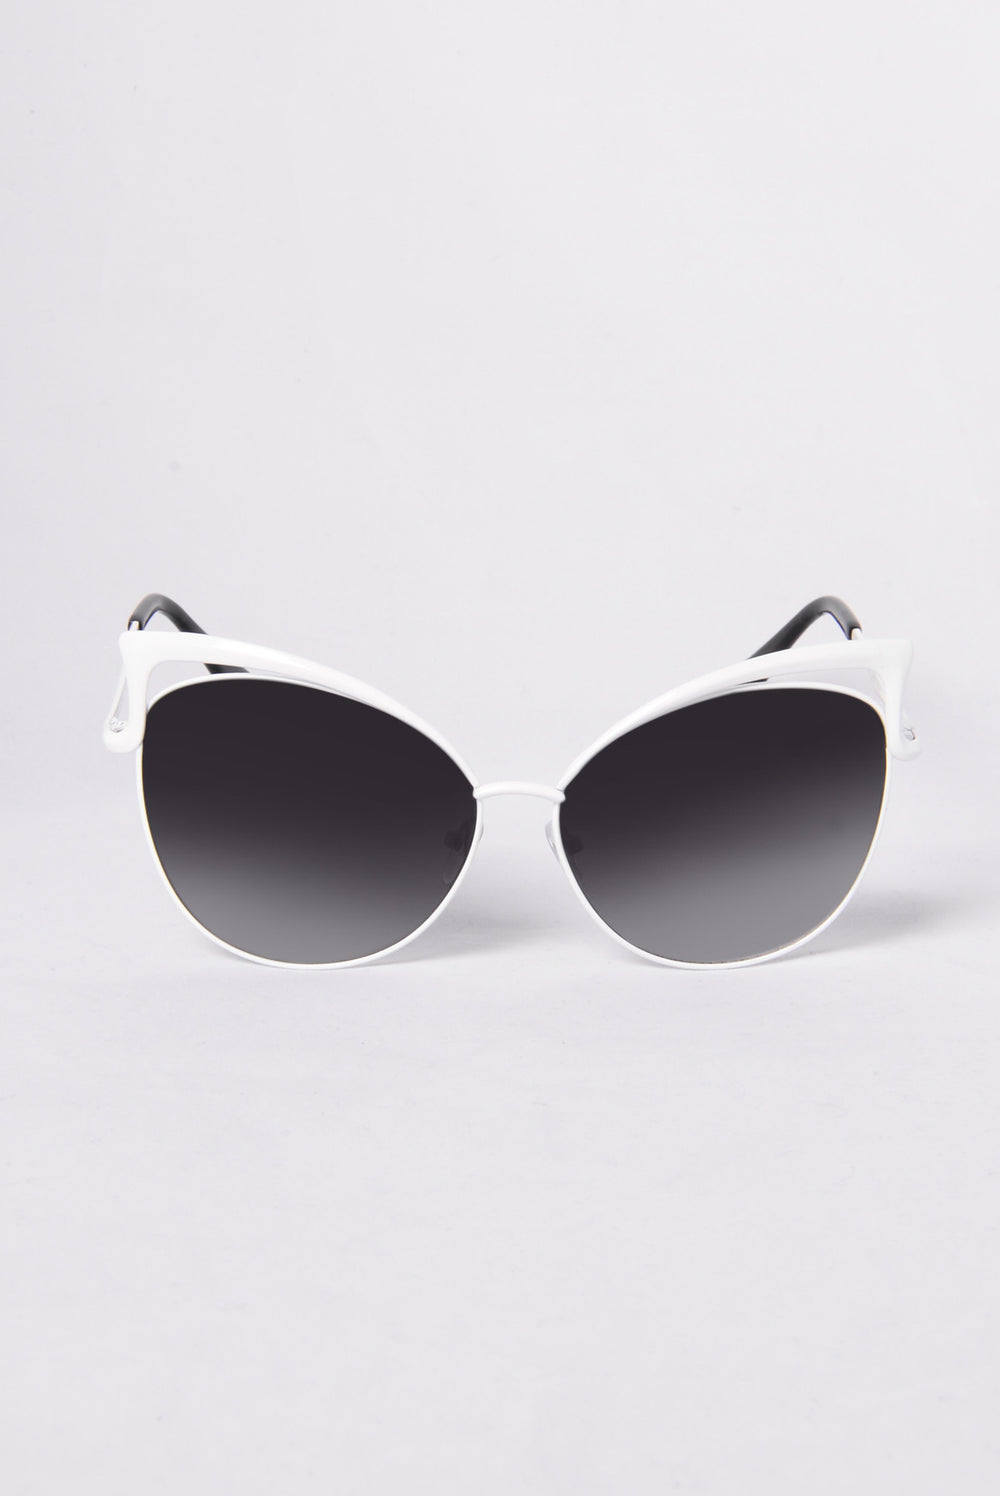 Start Some Drama Sunglasses - White/Black